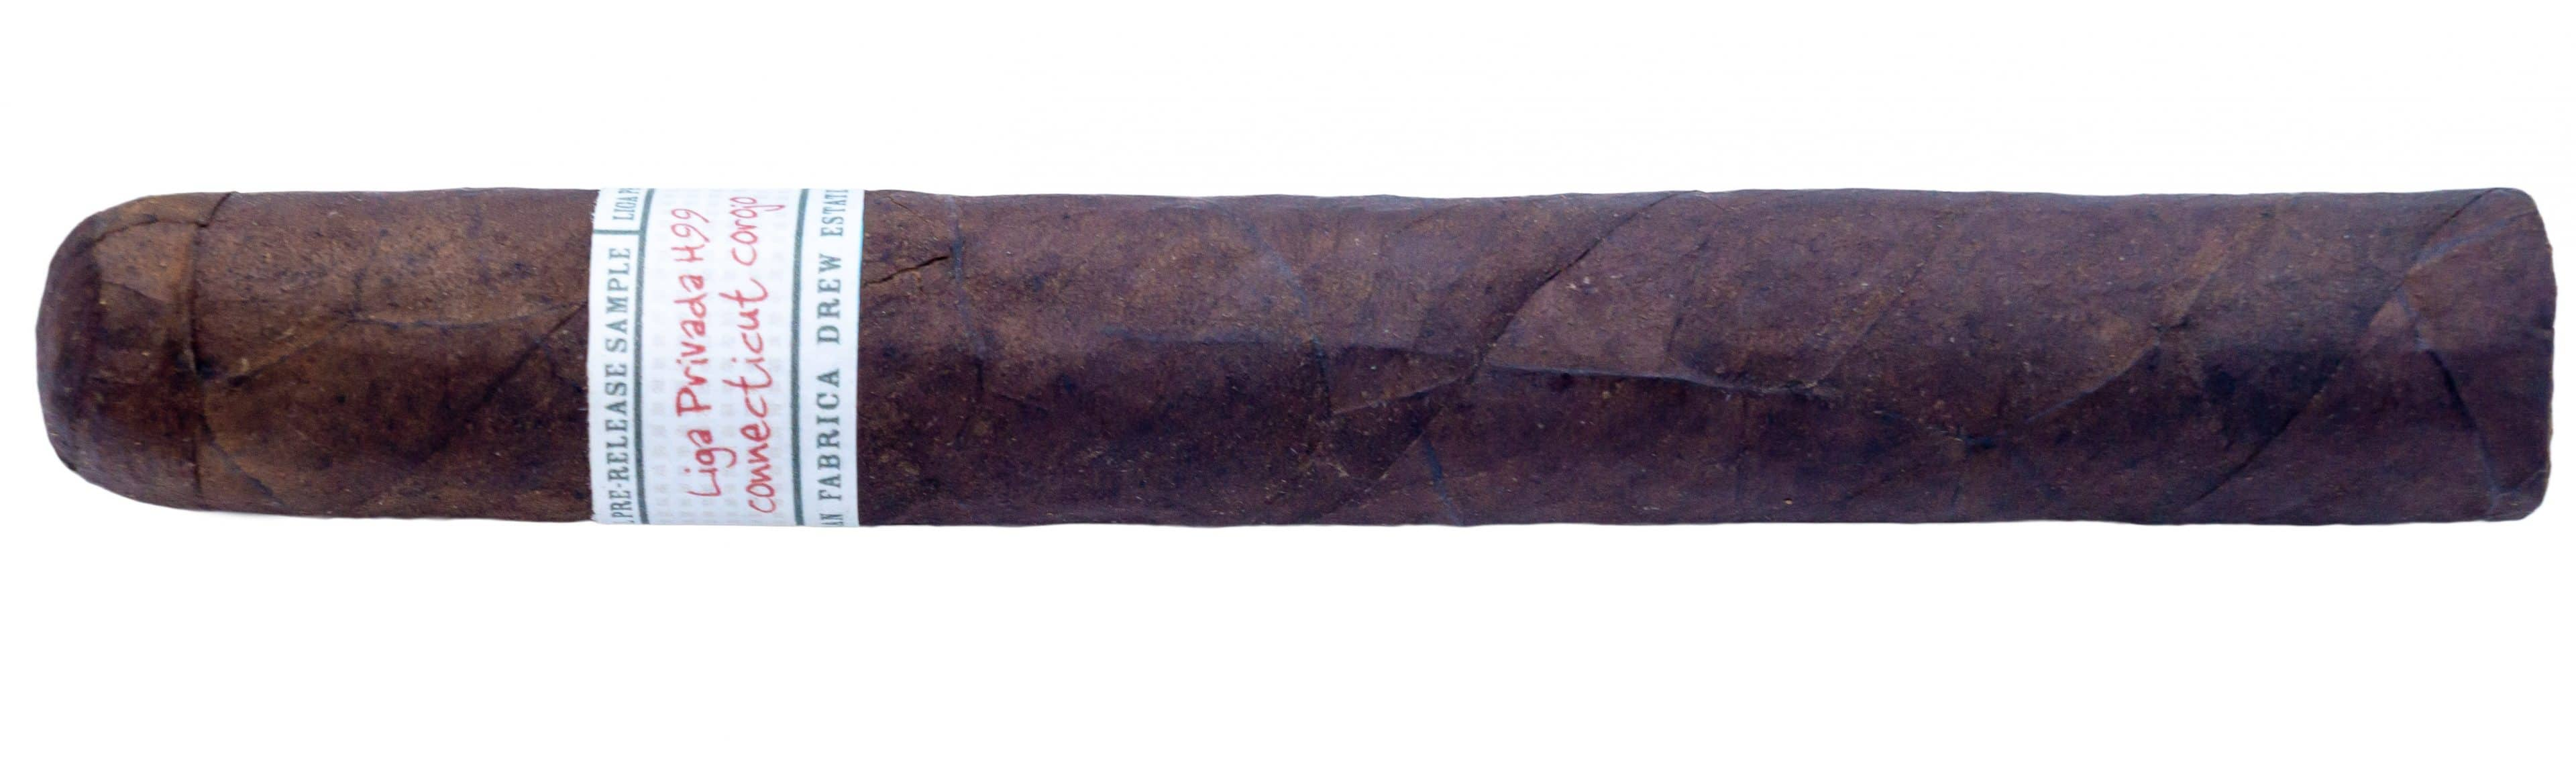 Blind Cigar Review: Drew Estate | Liga Privada H99 Toro